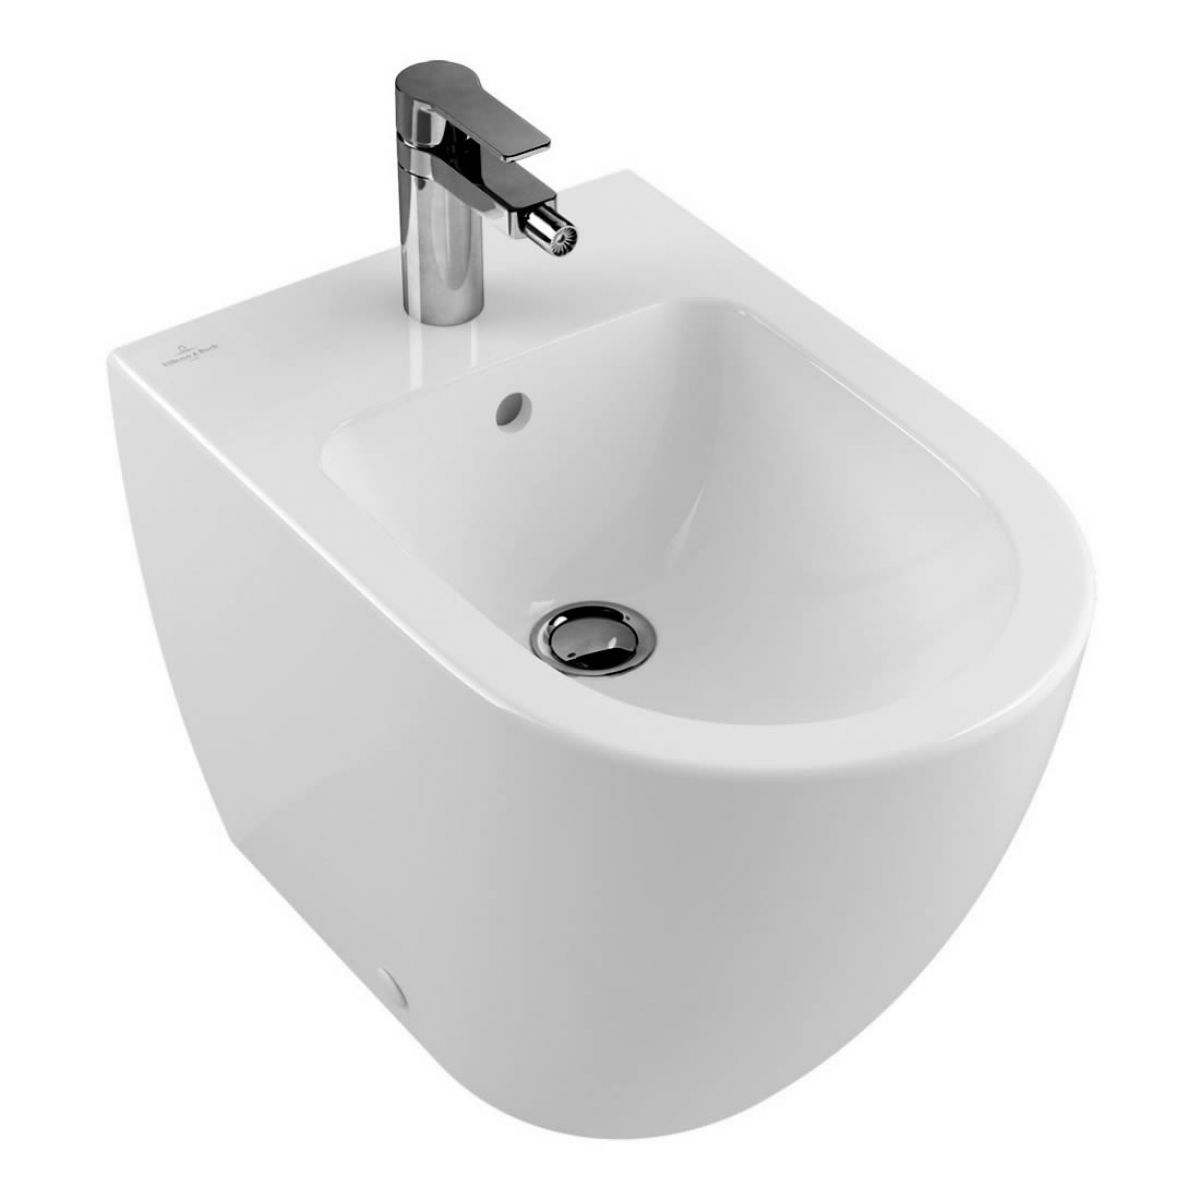 villeroy and boch subway 2 0 floor standing bidet uk bathrooms. Black Bedroom Furniture Sets. Home Design Ideas